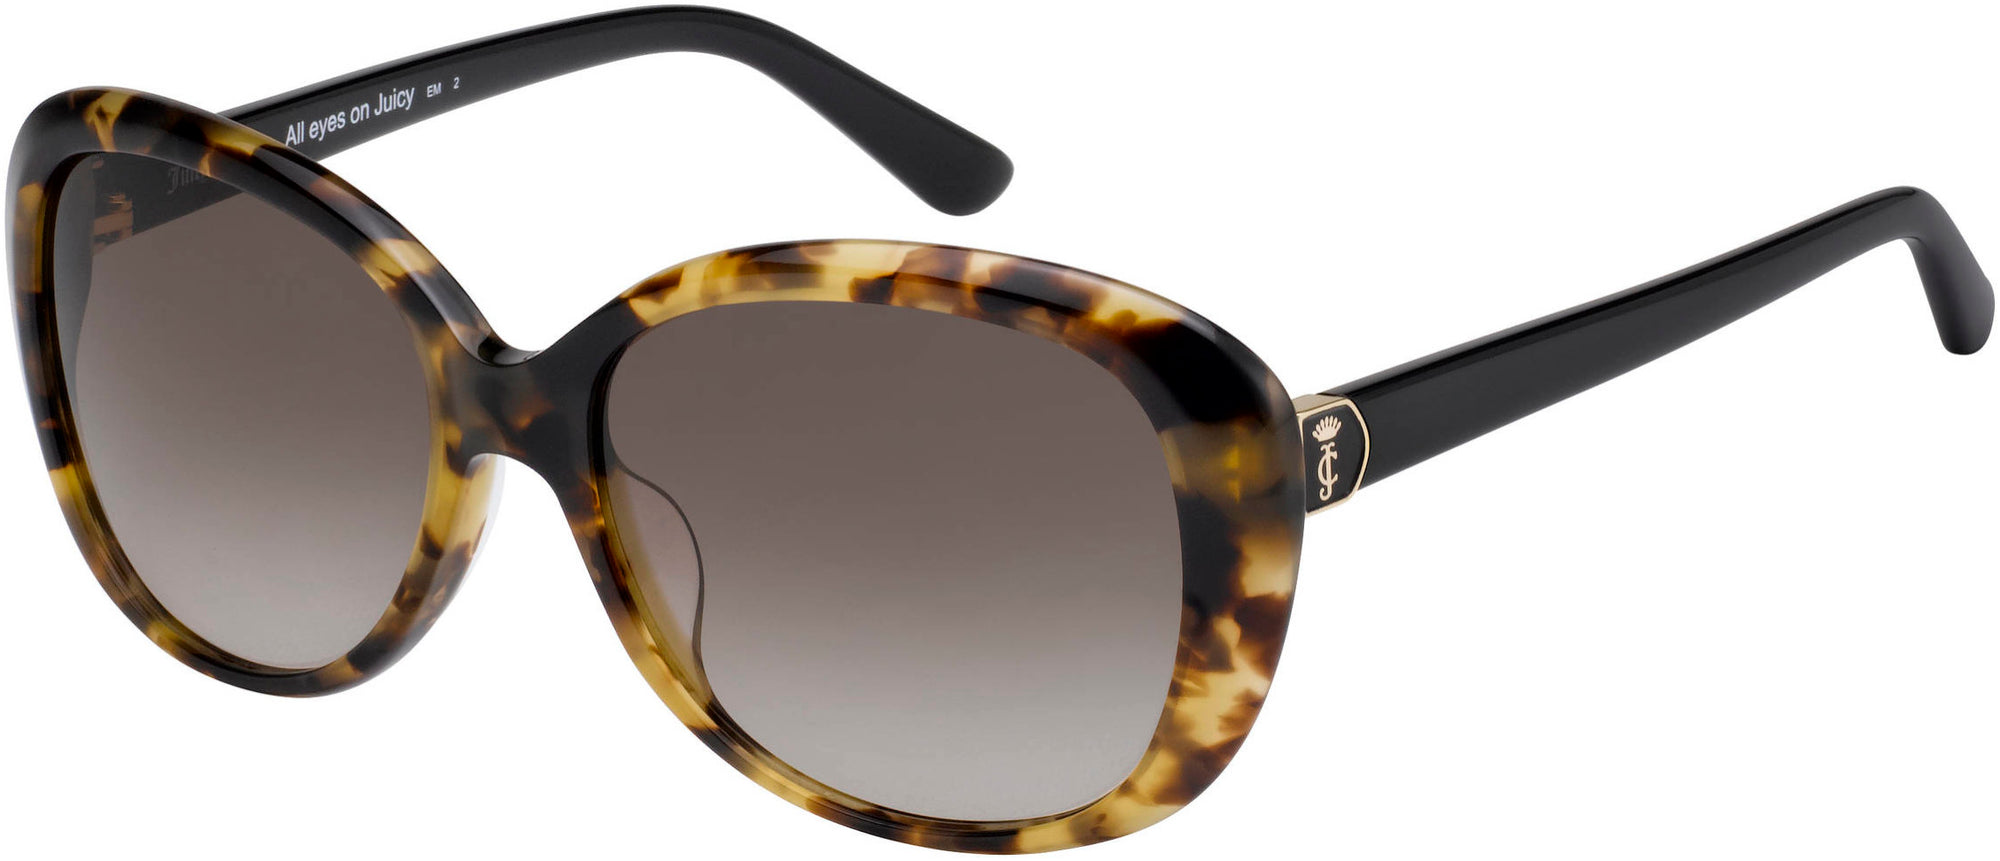 Banana Republic JU 598/S Square Sunglasses 0581-0581  Havana Black (HA Brown Gradient)